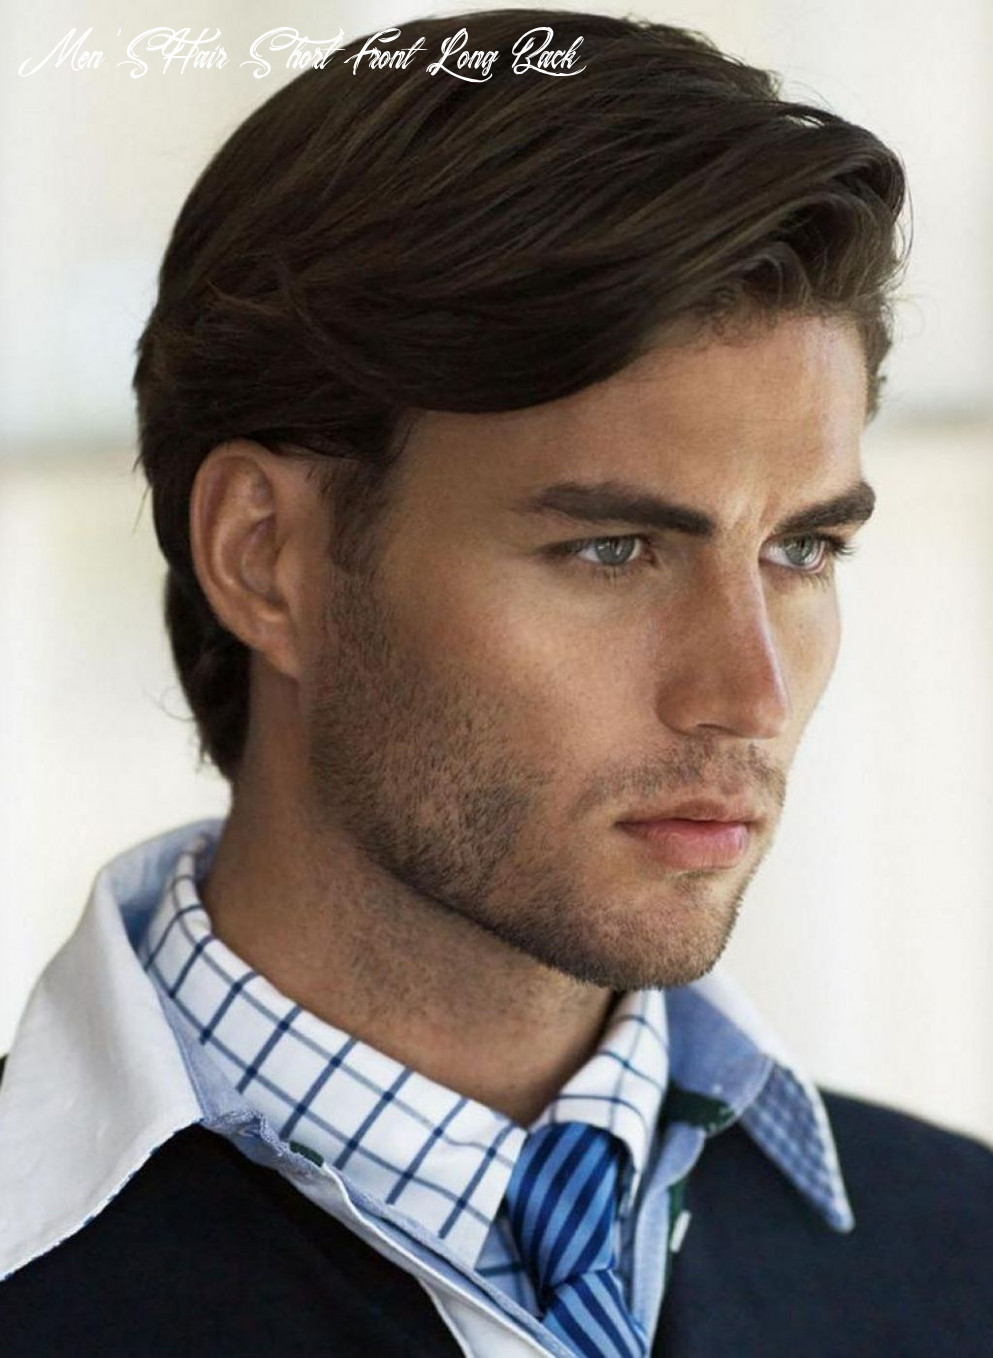 Some good inspiration of short haircuts for guy with 11 picture of